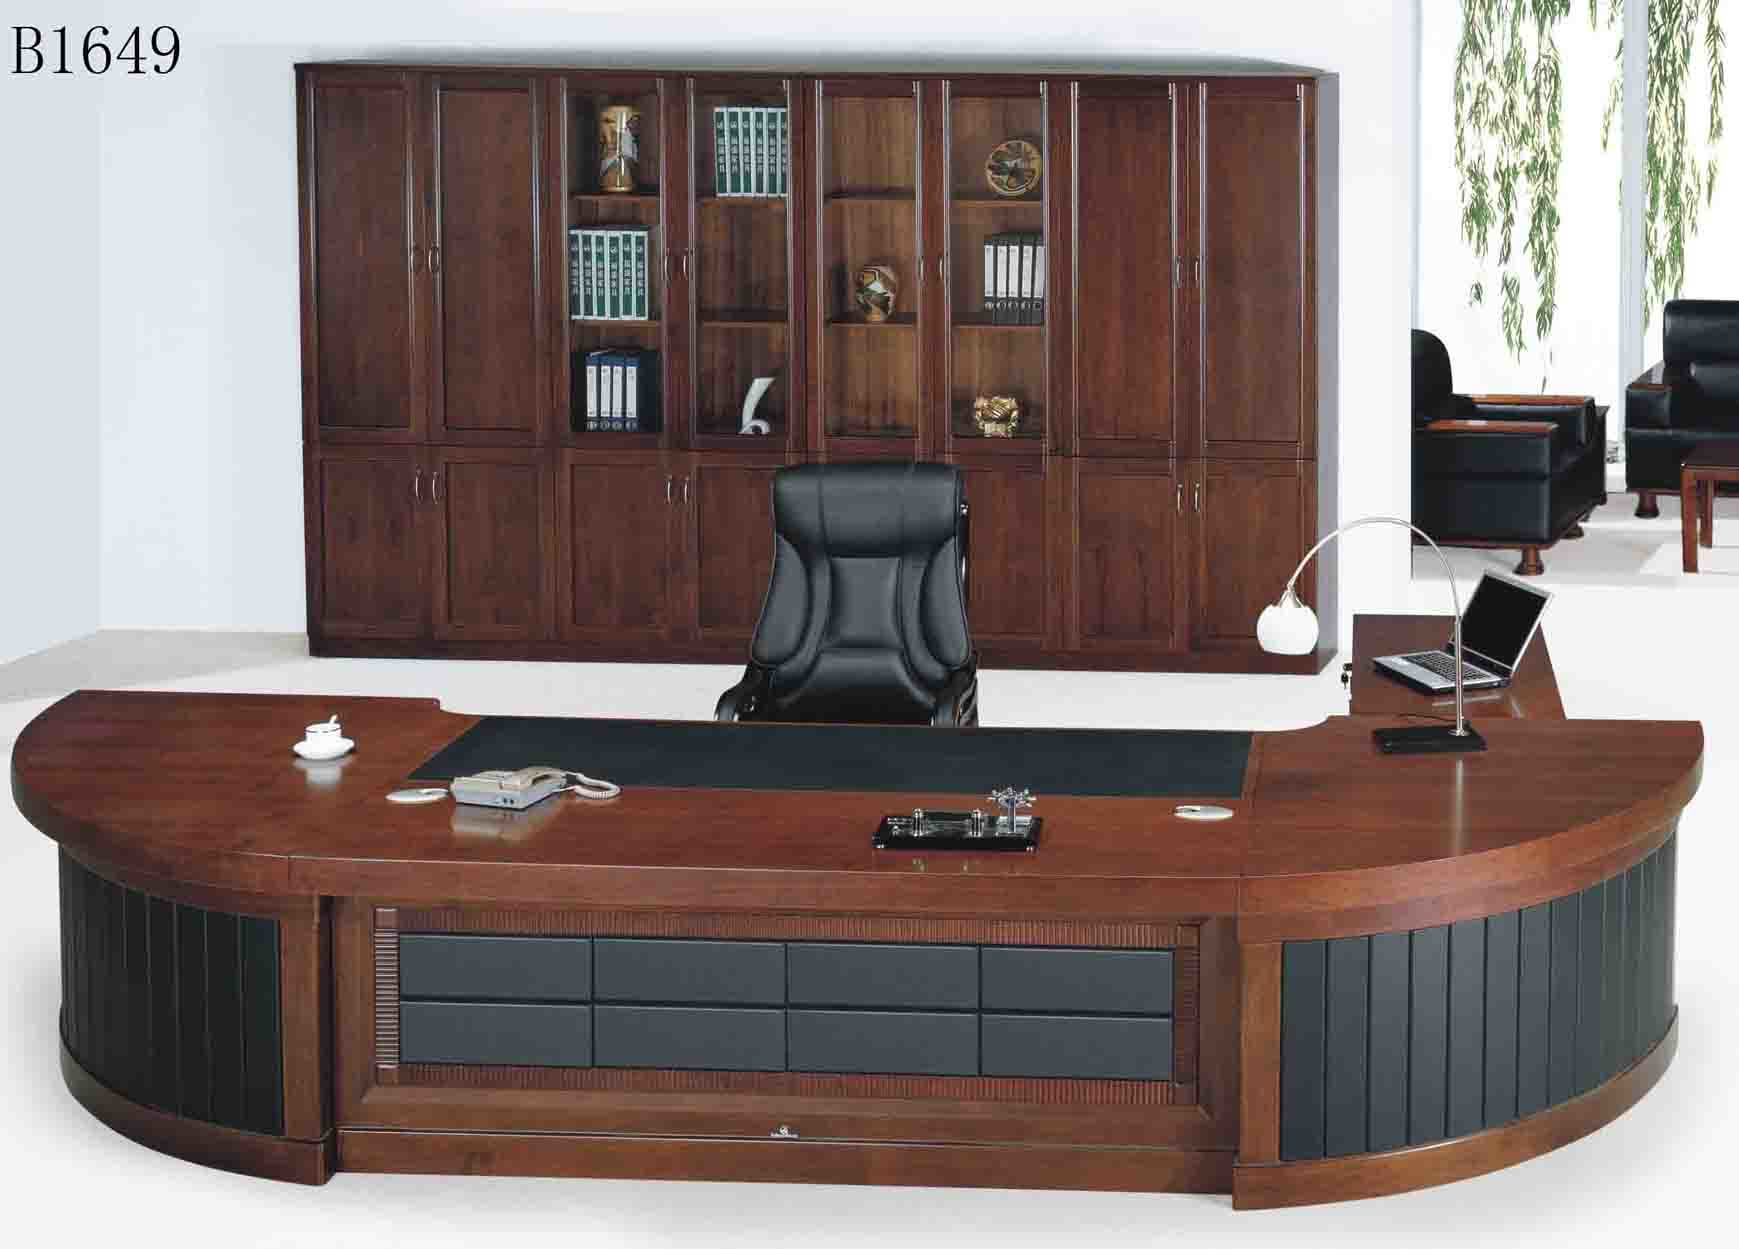 Executive Office Furniture: China Office Furniture Executive Desk B1649